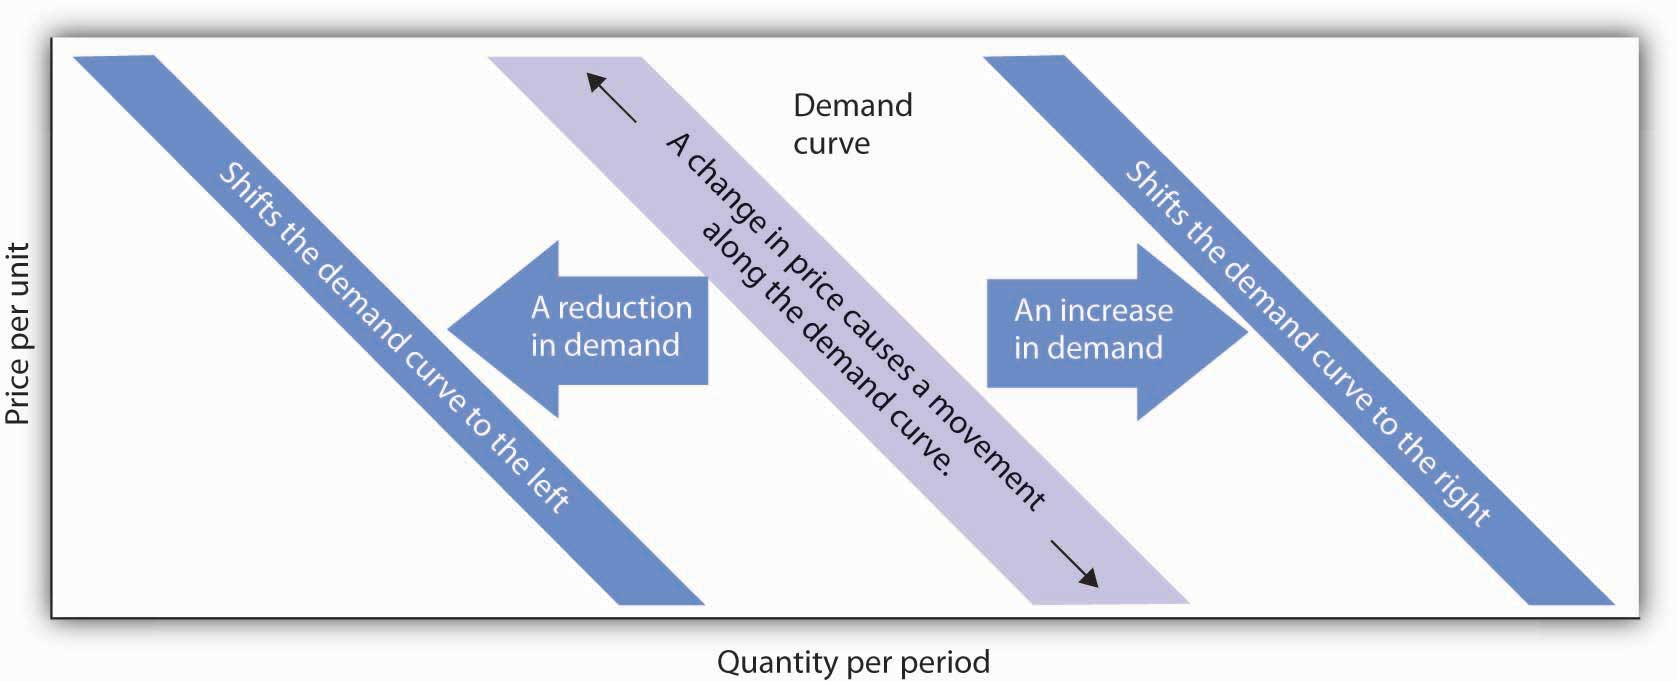 A demand curve